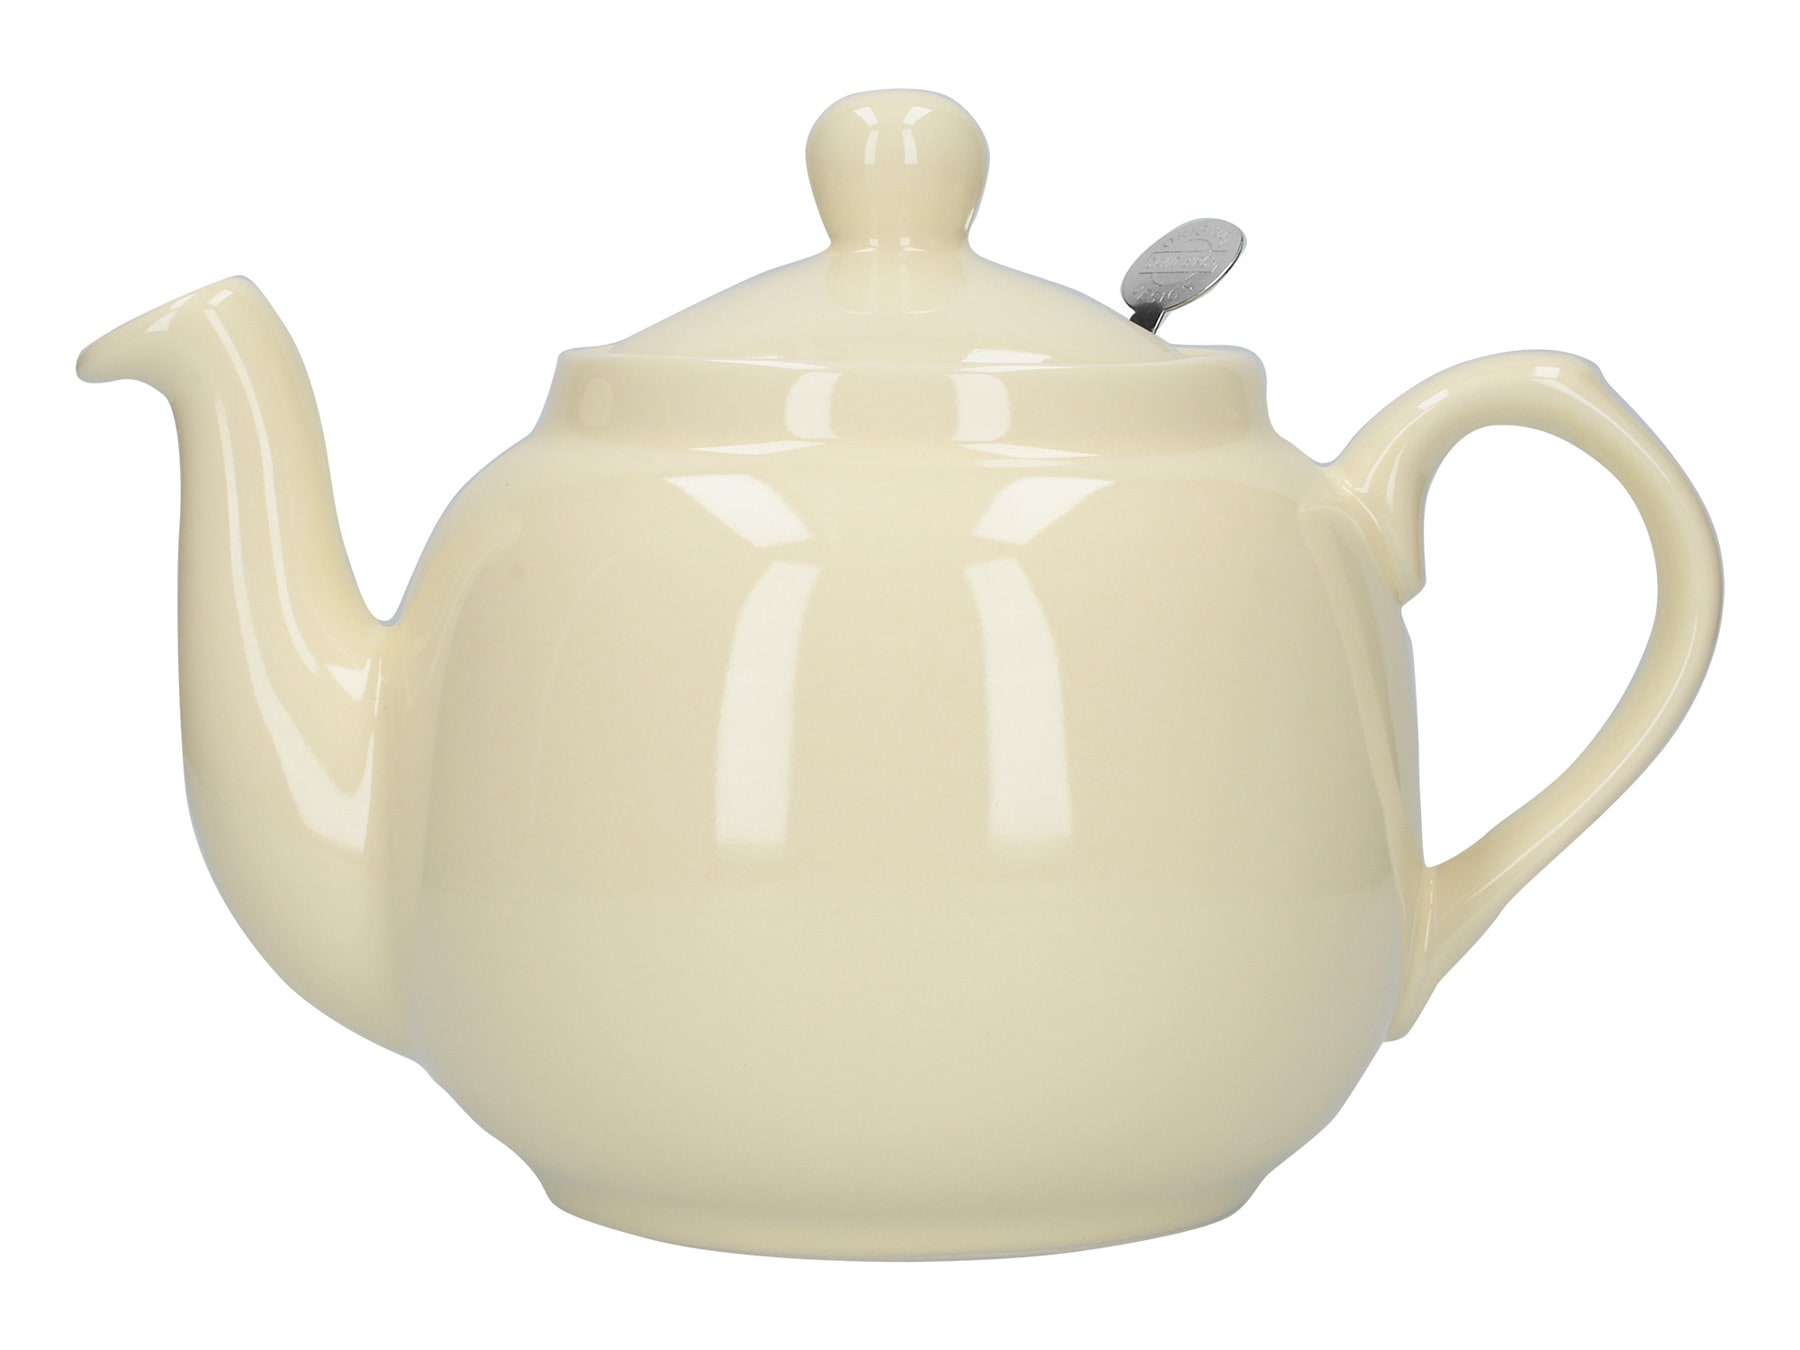 London Pottery Farmhouse 4 Cup Teapot Ivory